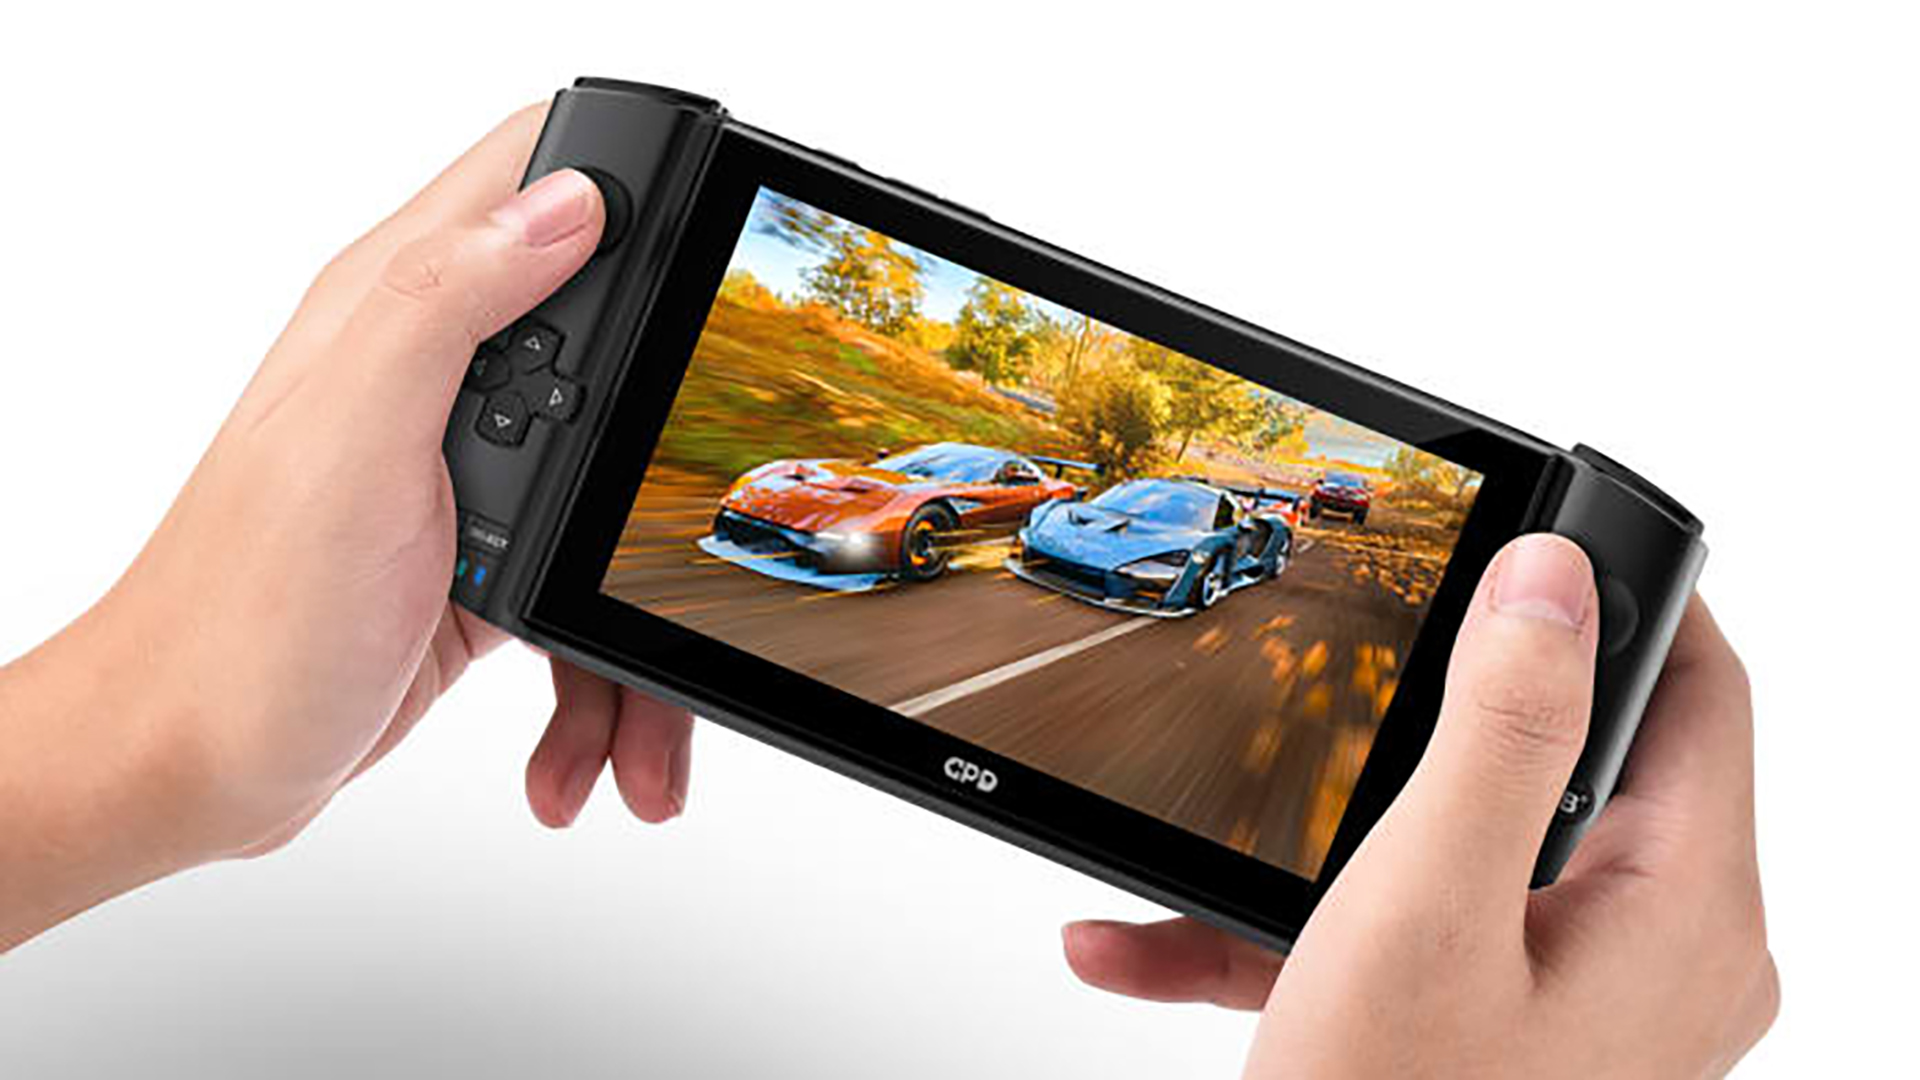 This Intel Xe-powered PC handheld might be the Switch alternative we've been waiting for